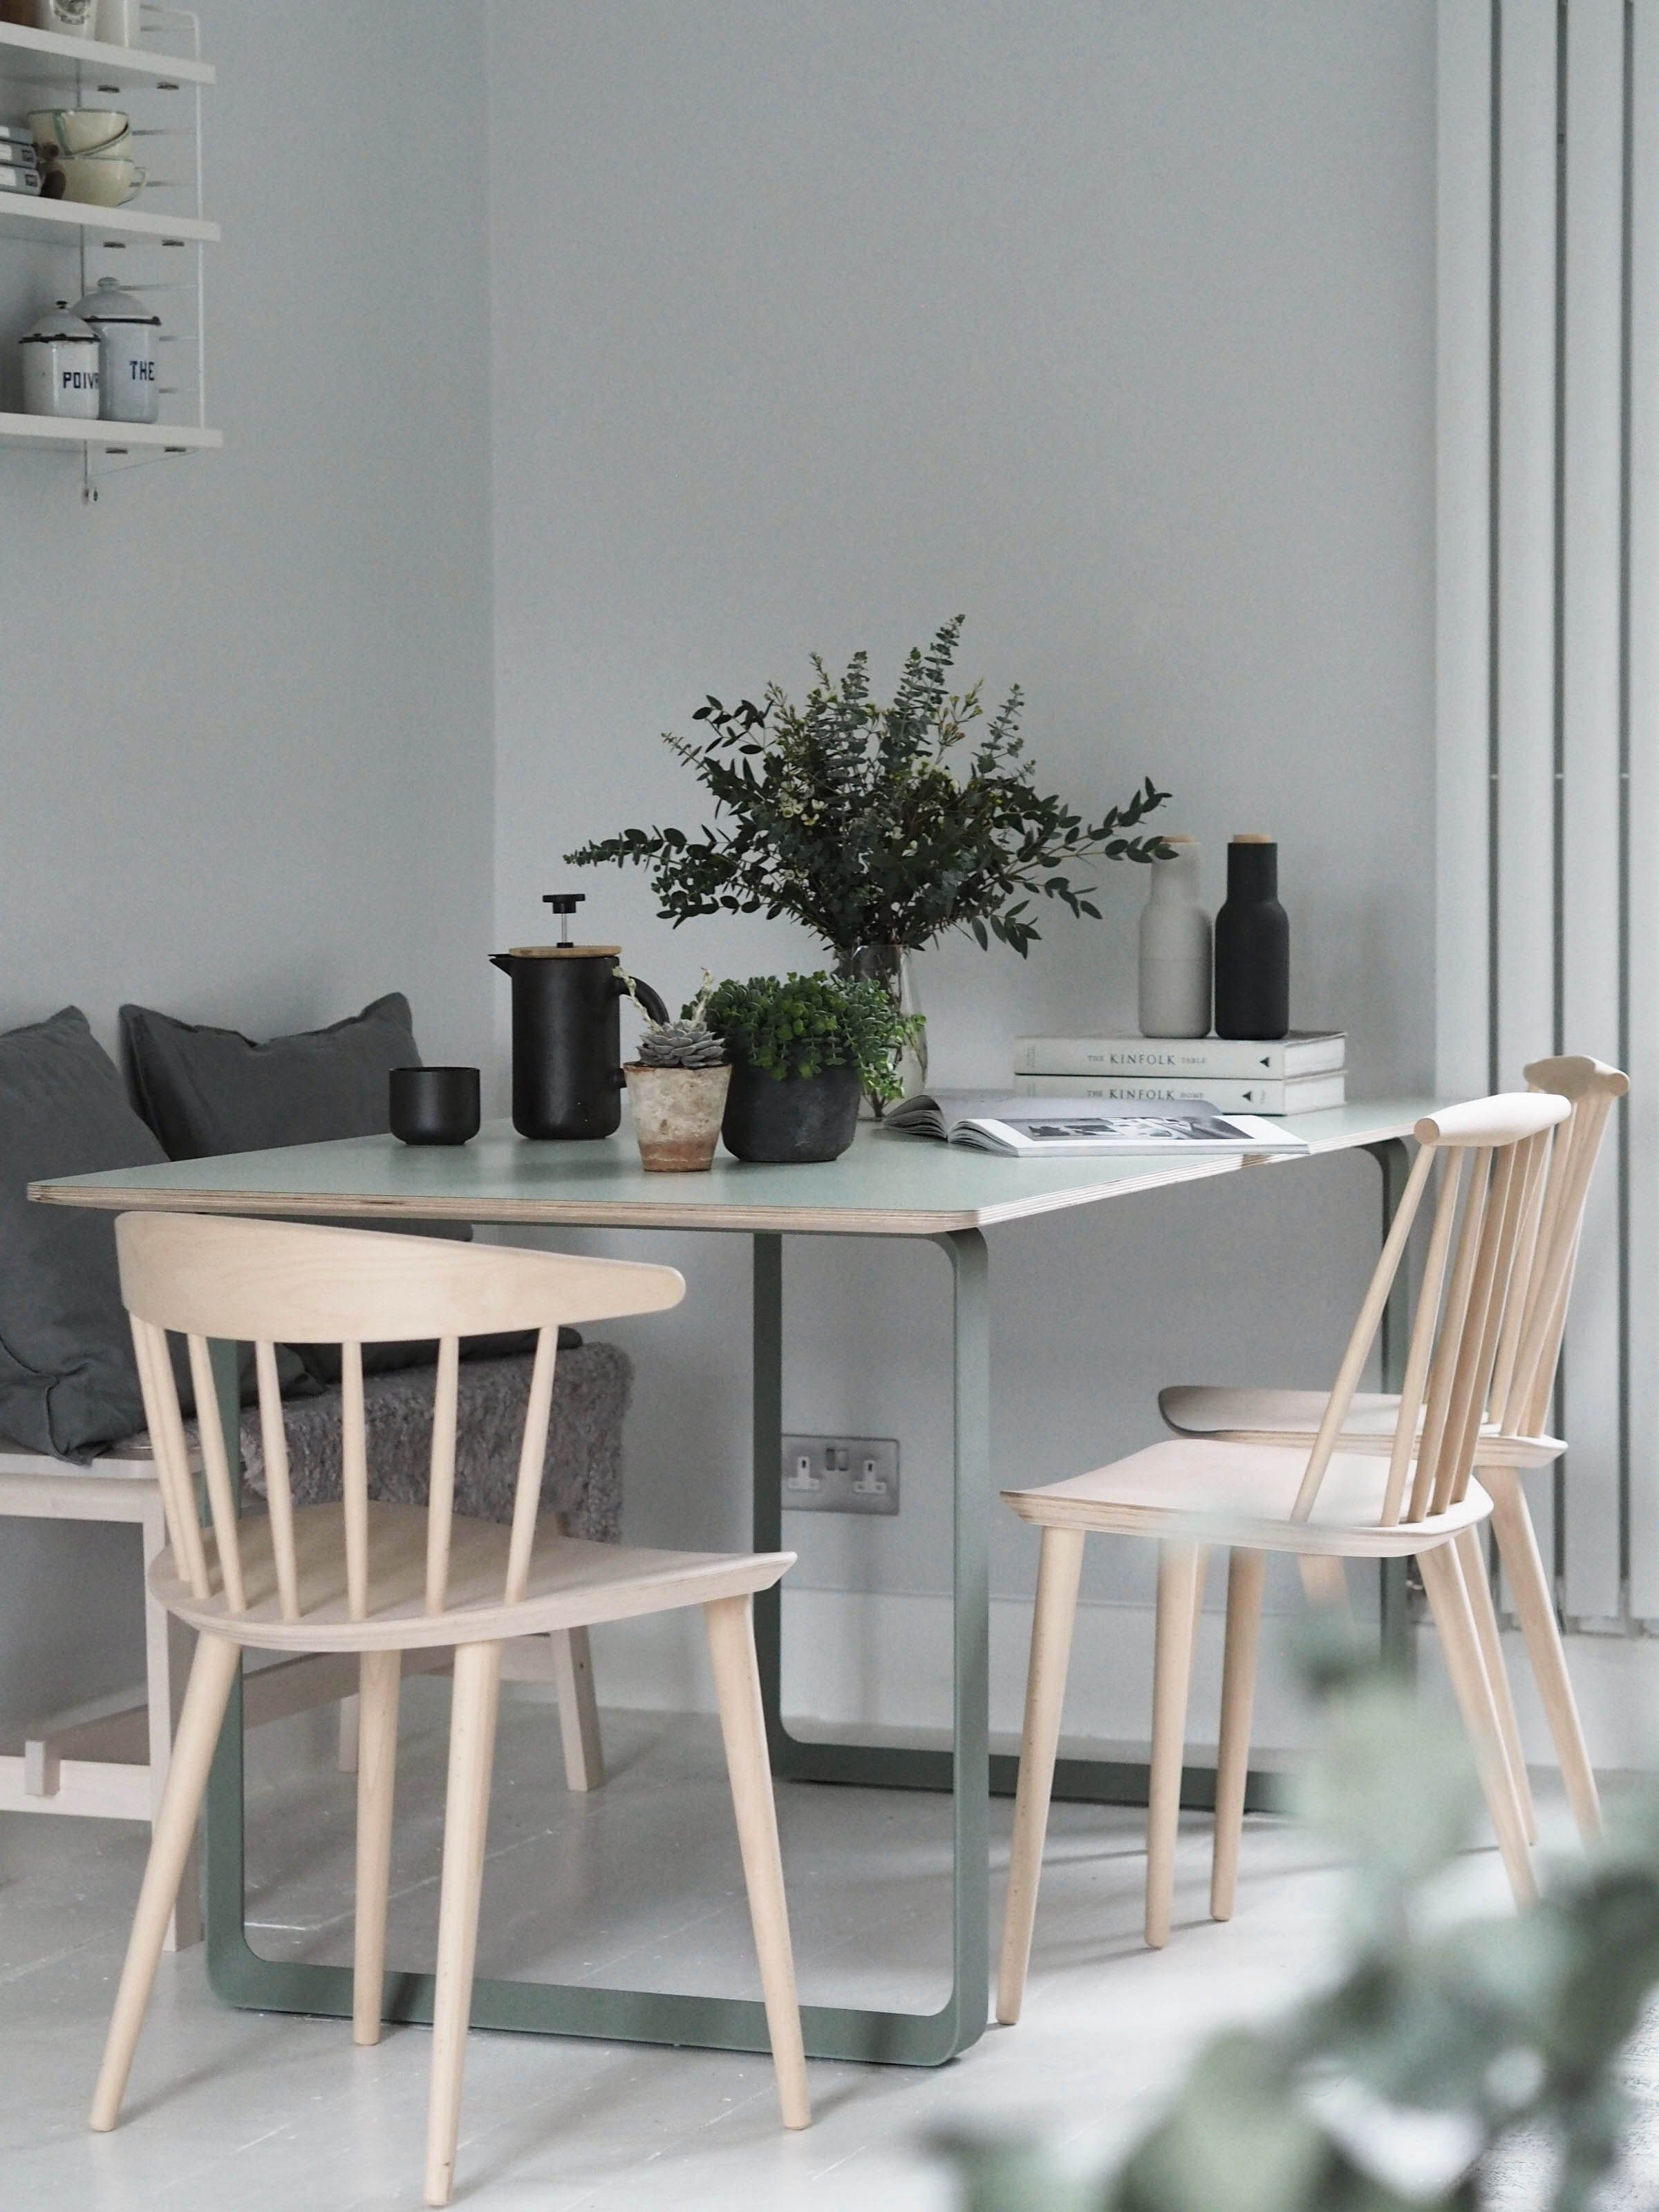 muuto 70 70 table in green modern scandinavian design dining table plants in the home